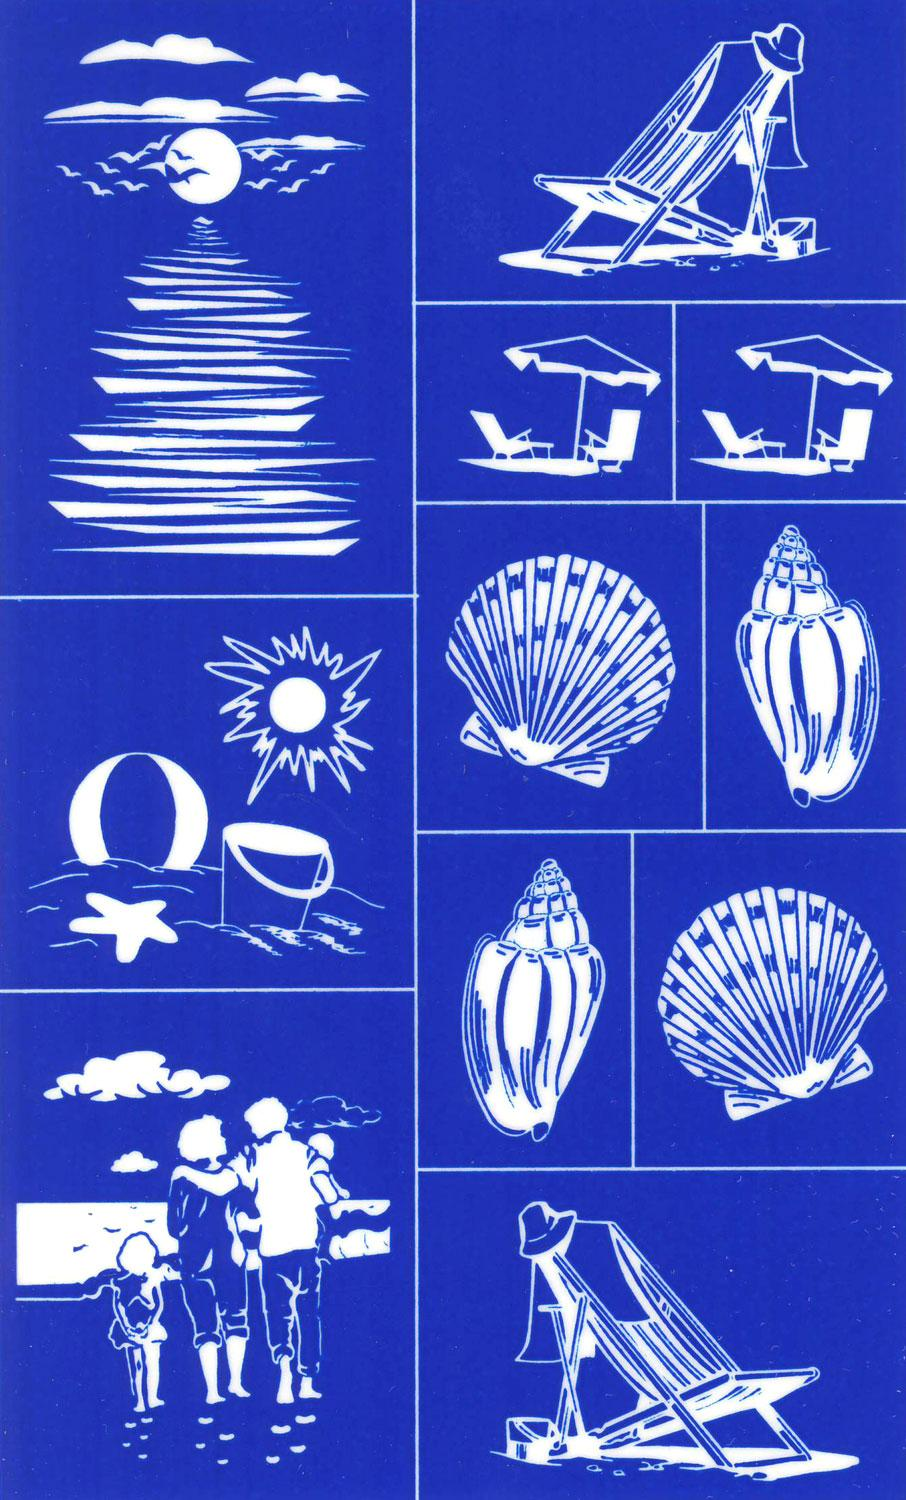 Rub n etch stencil beach designs etching engraving for Glass etching templates for free